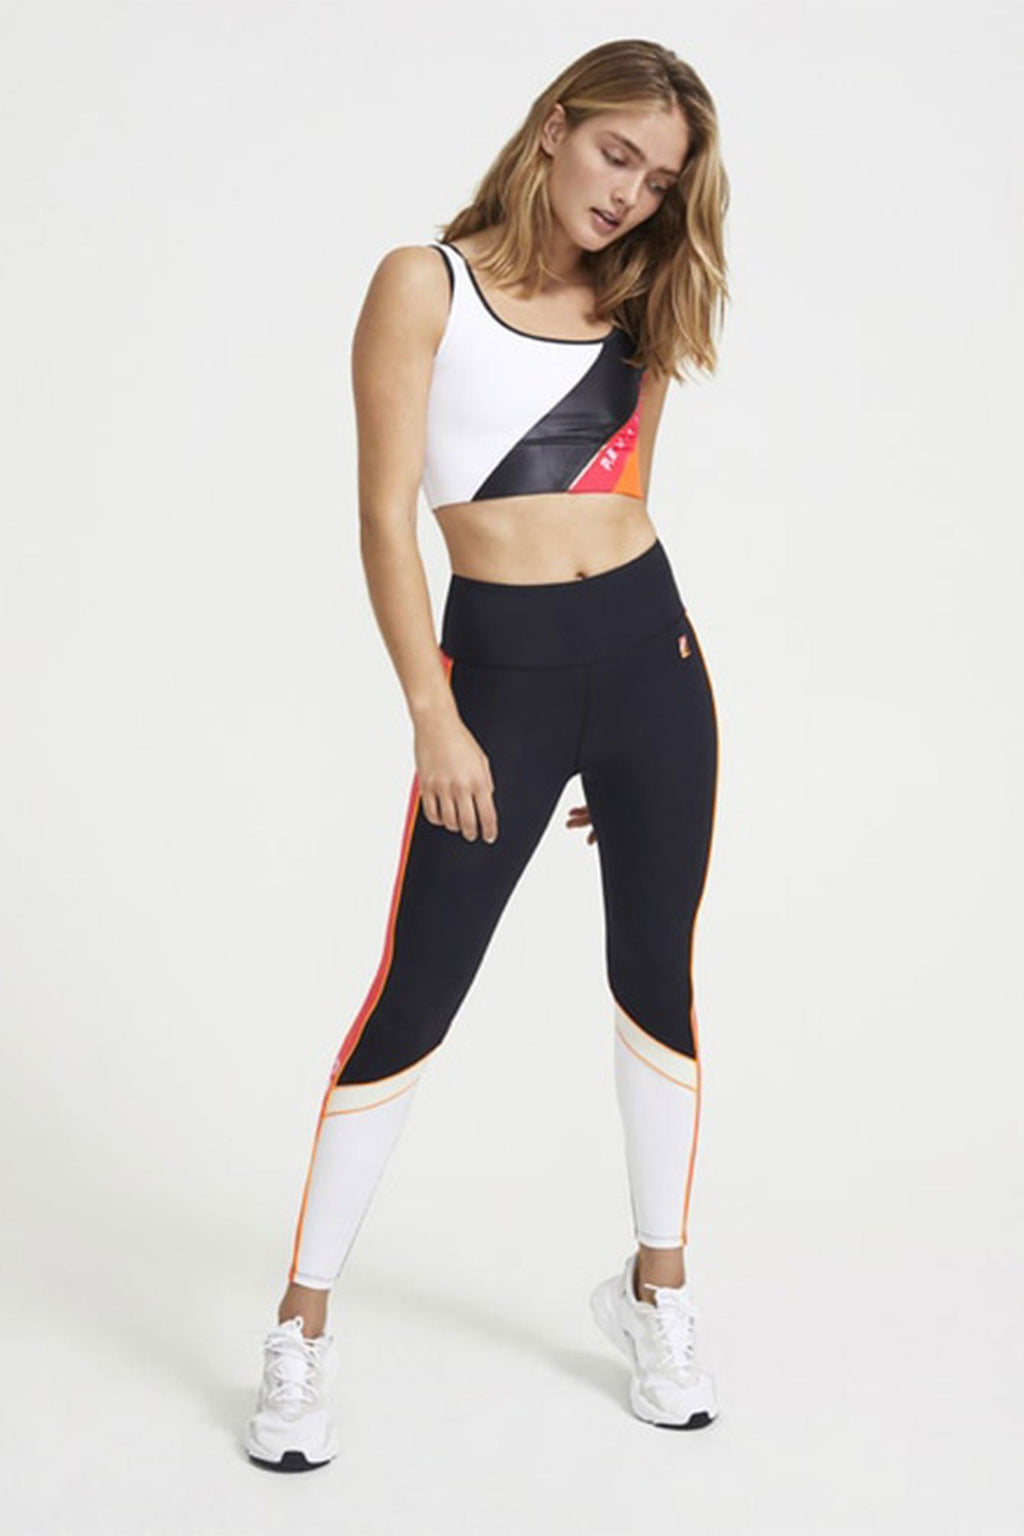 P.E NATION | Rebuild Legging - Black + Neon